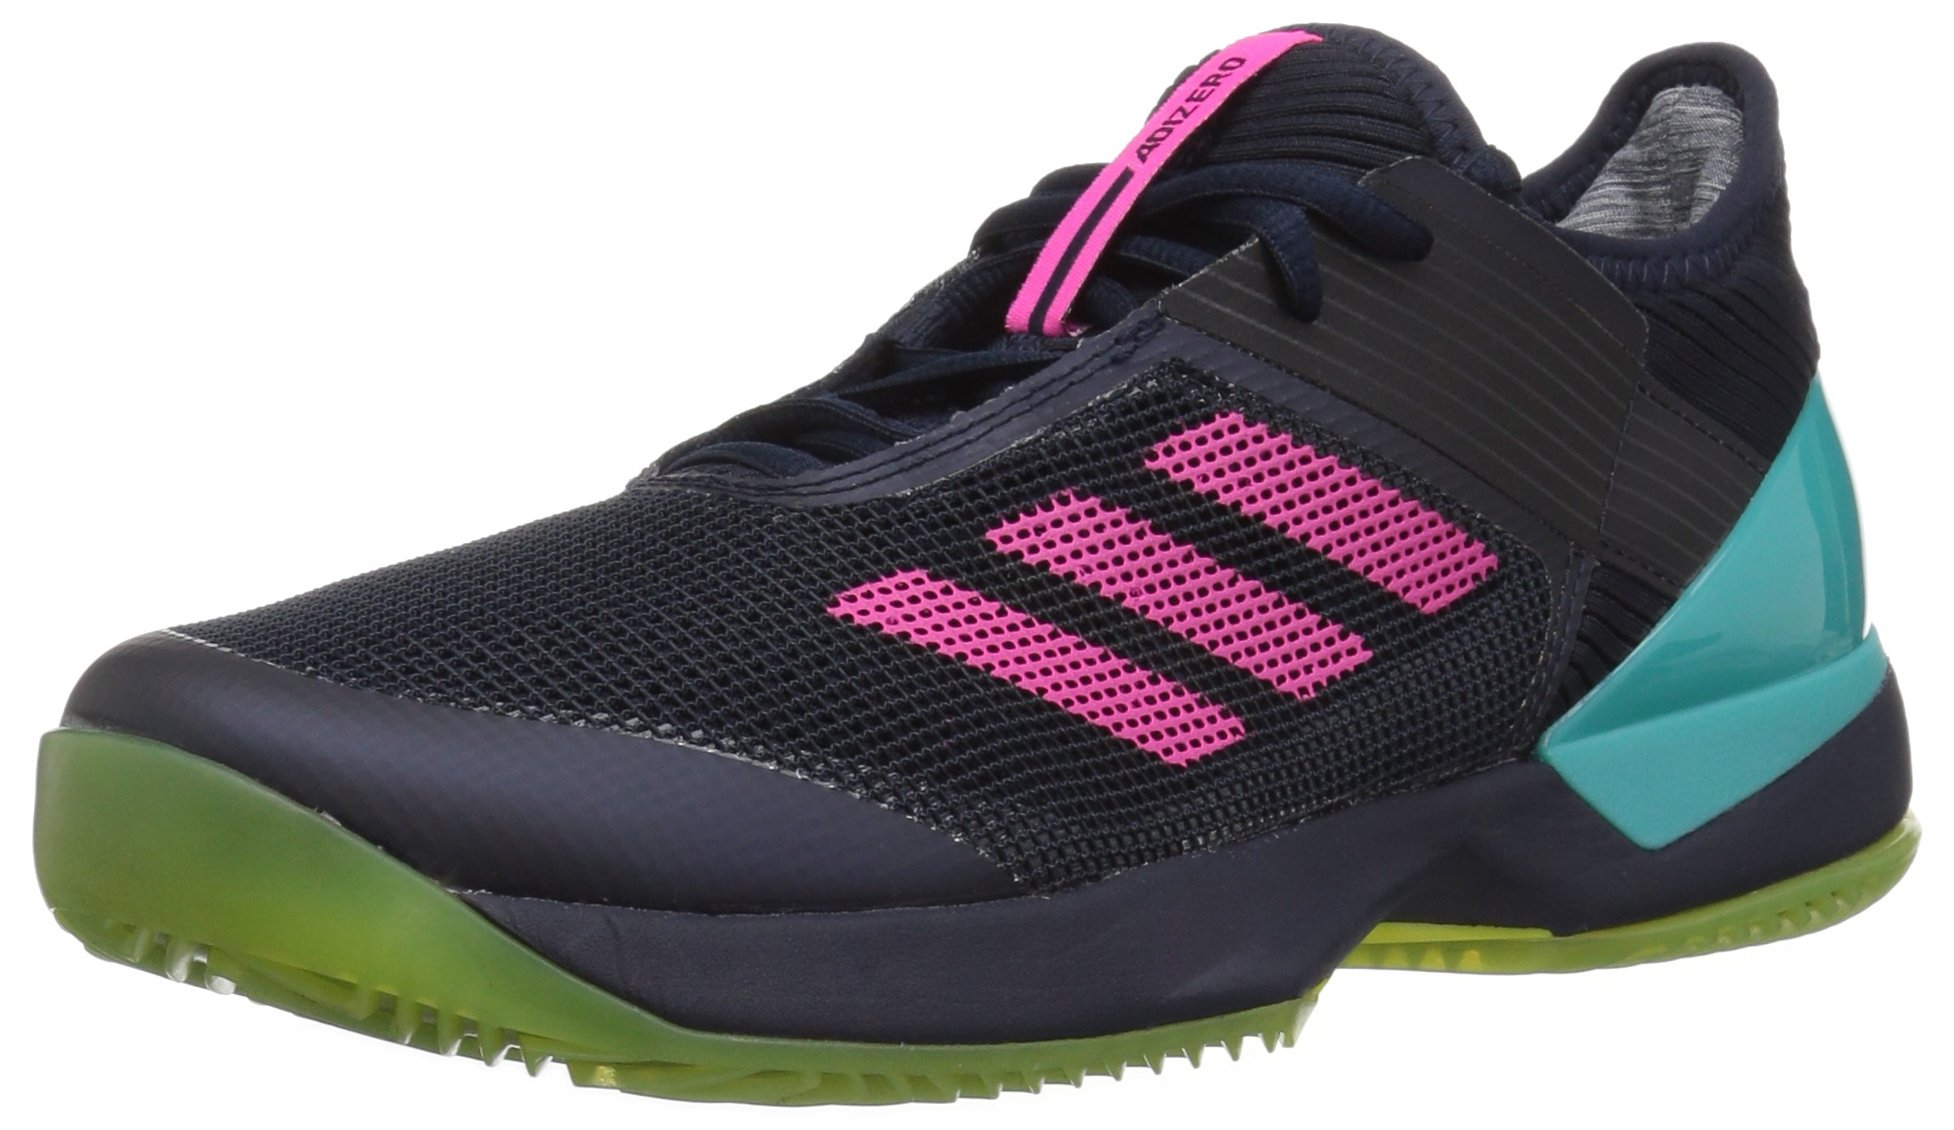 adidas Women's Adizero Ubersonic 3 Clay Tennis Shoe, Legend Ink/Shock Pink/hi-res Aqua, 7 M US